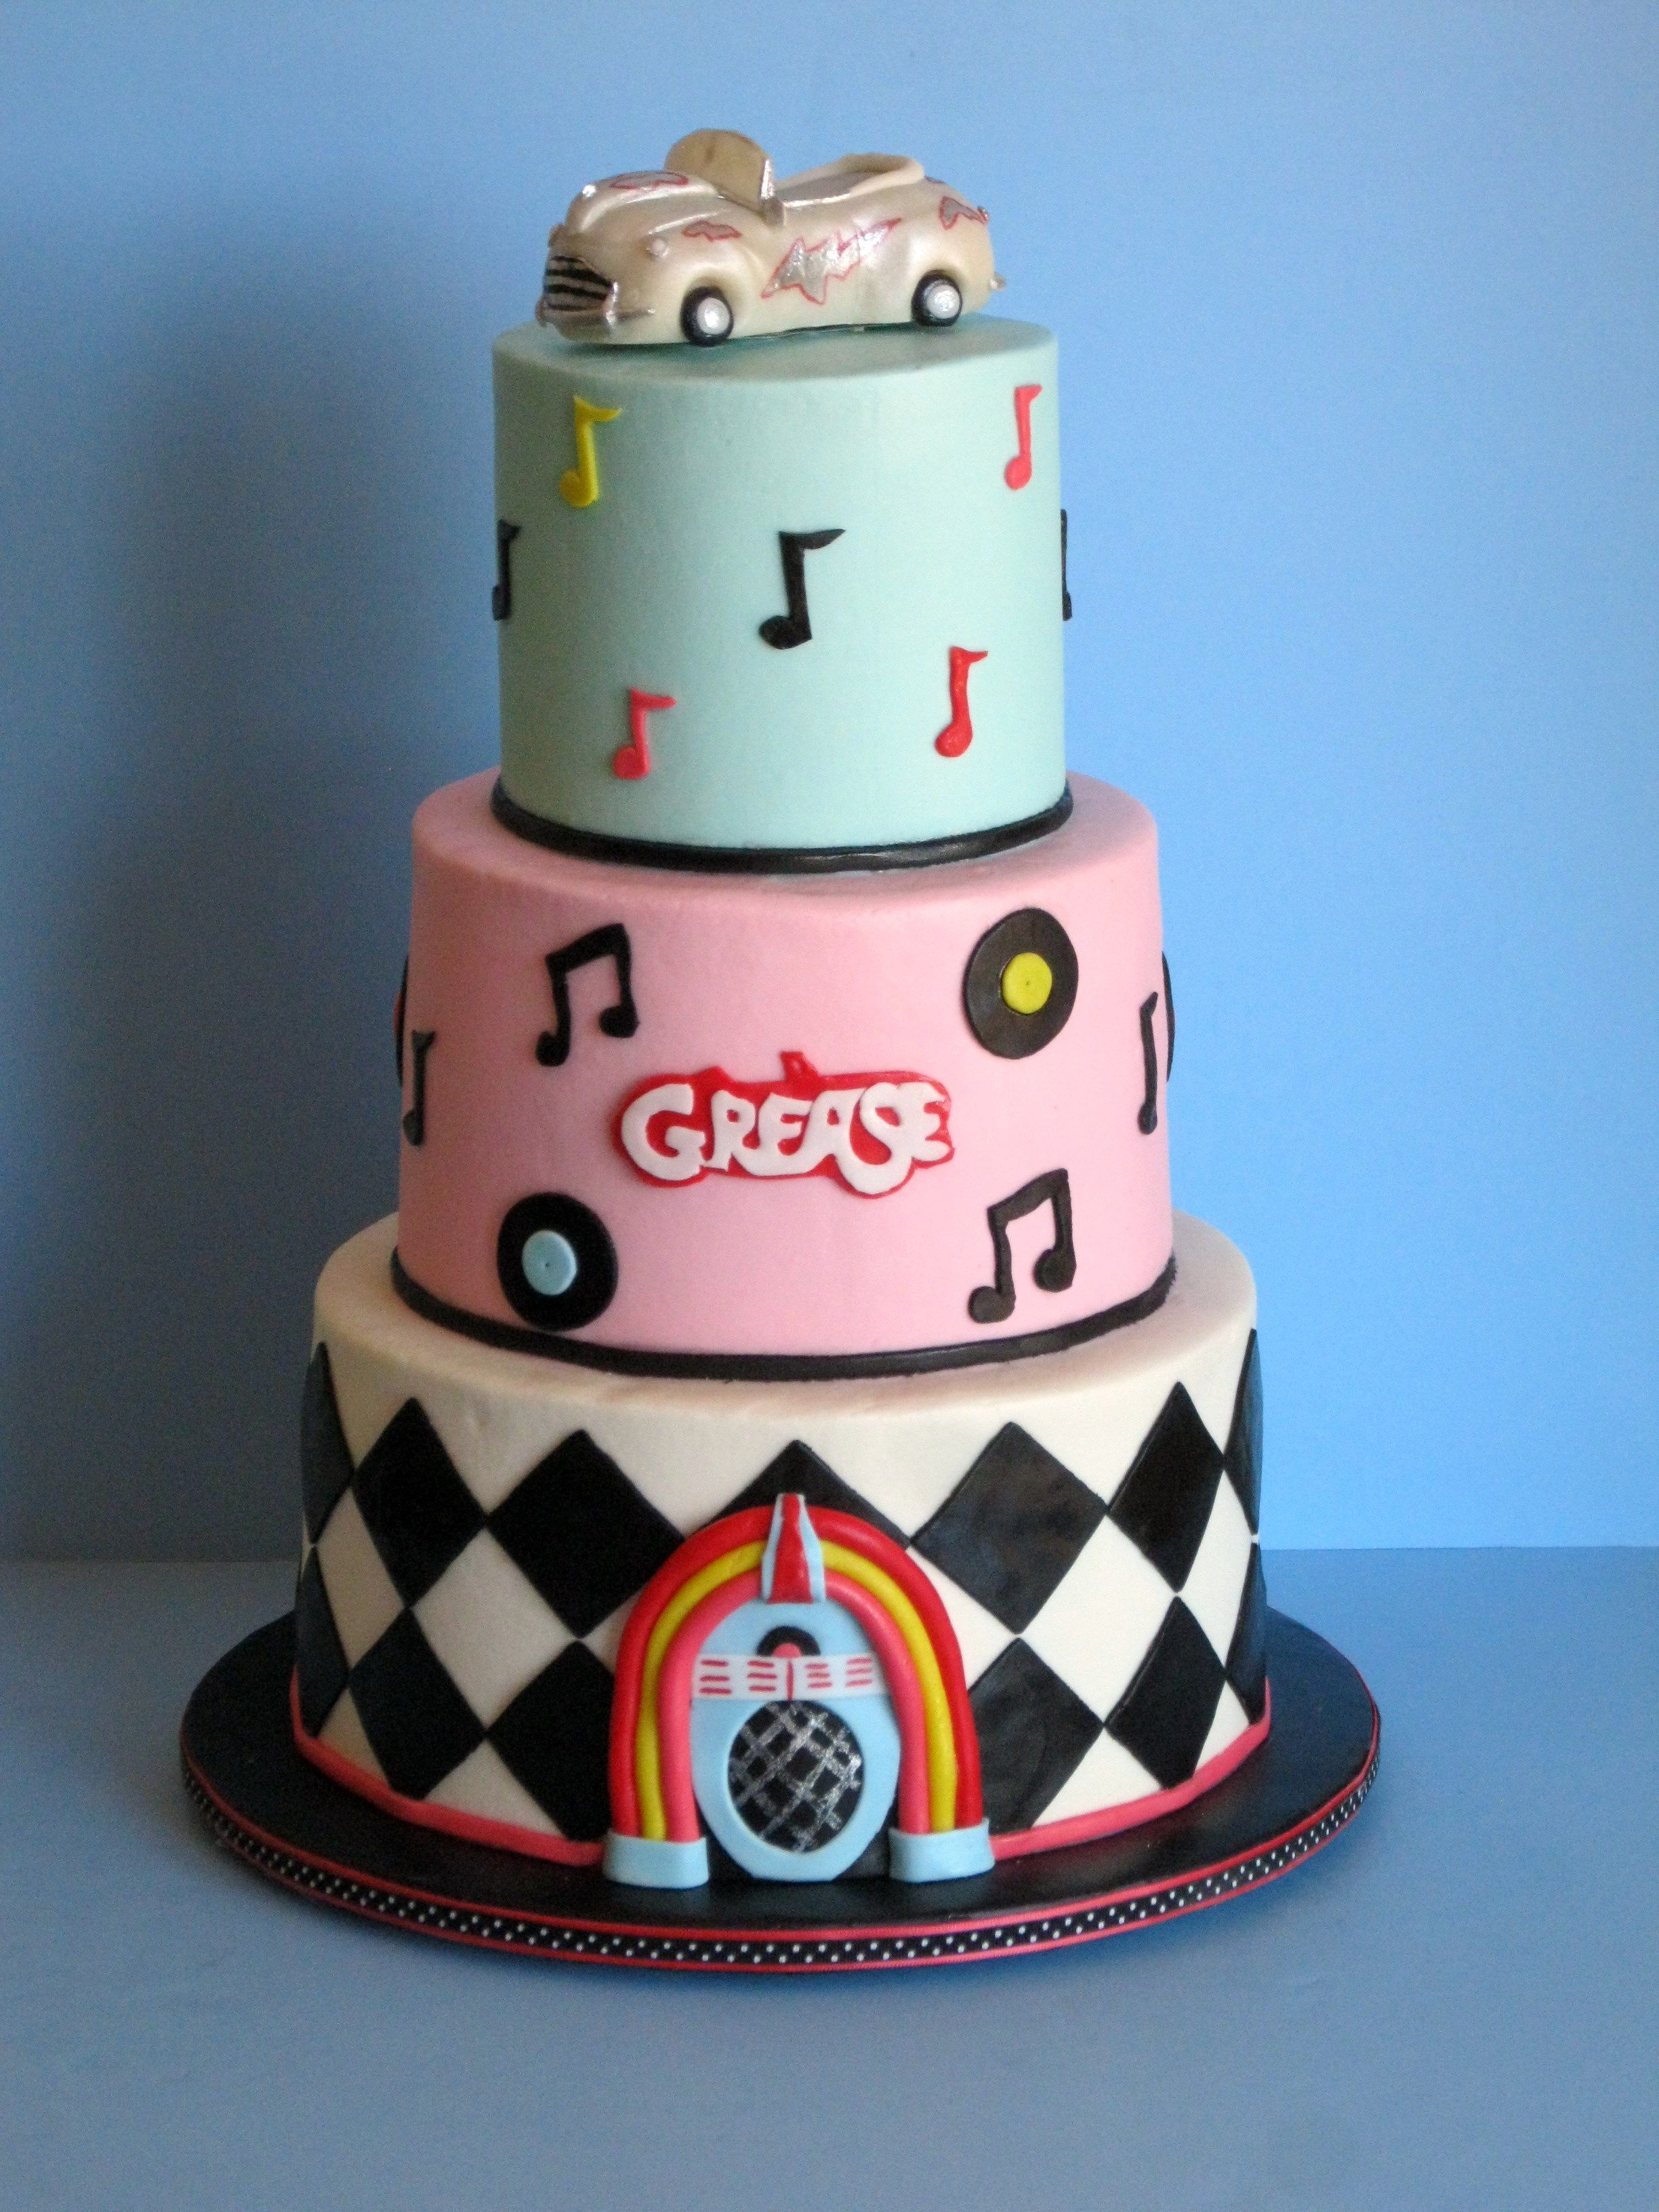 1950 S Grease Themed Birthday Cake Covered In Ercream With Fondant